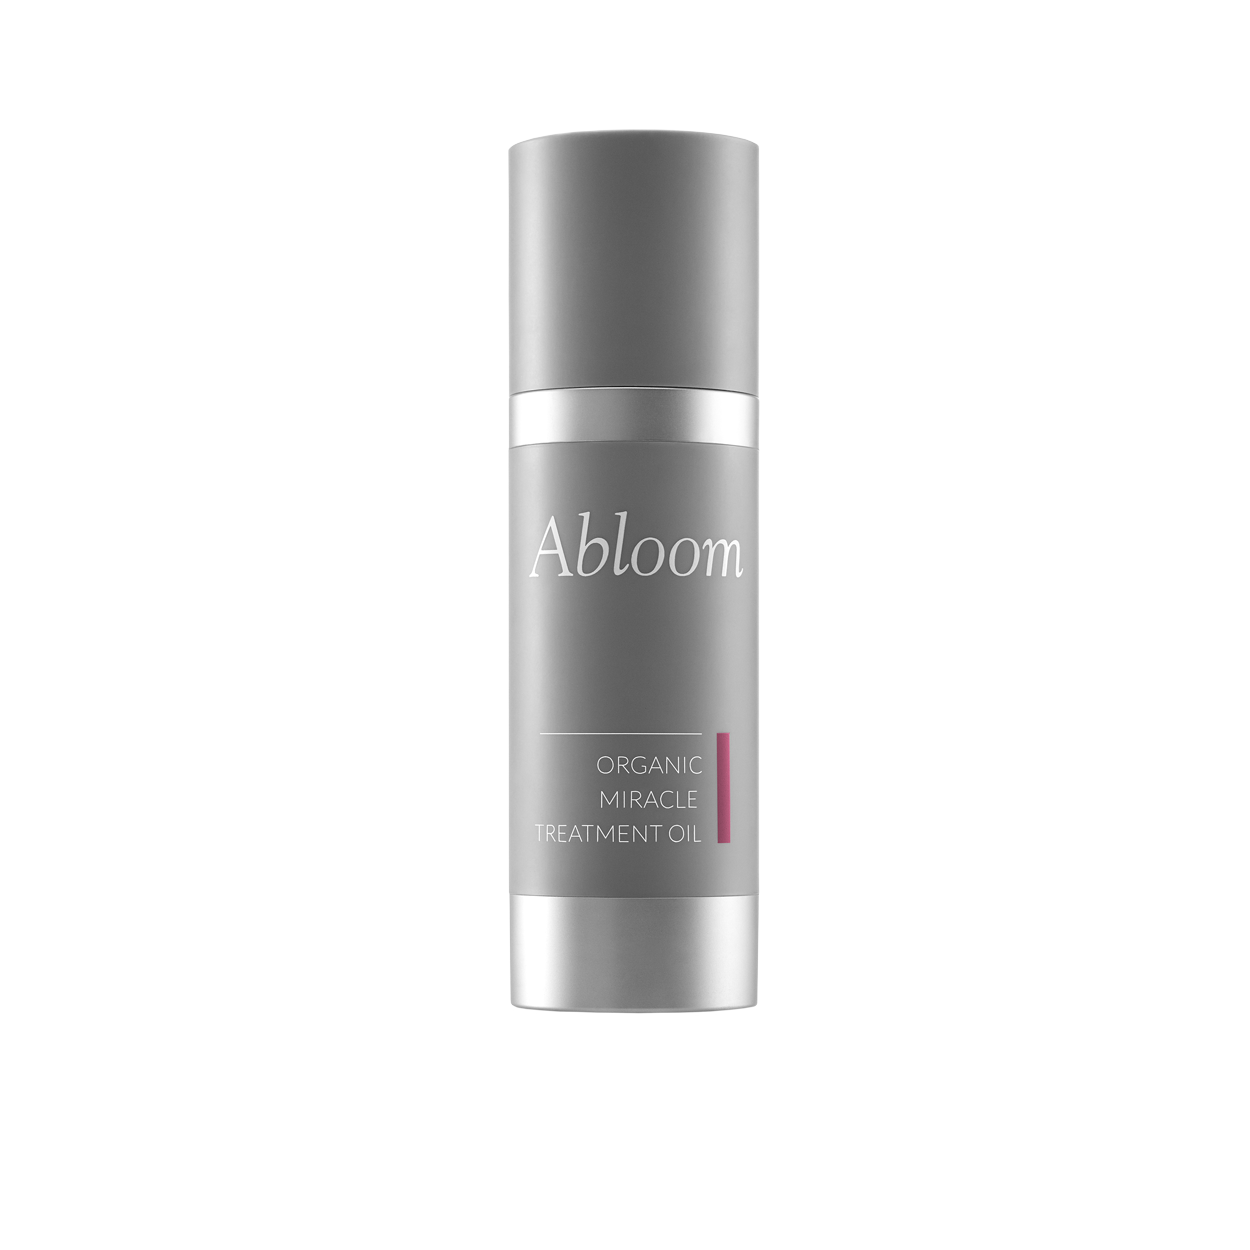 abloom, miracle treatment oil, skincare, organic, raw, face oil